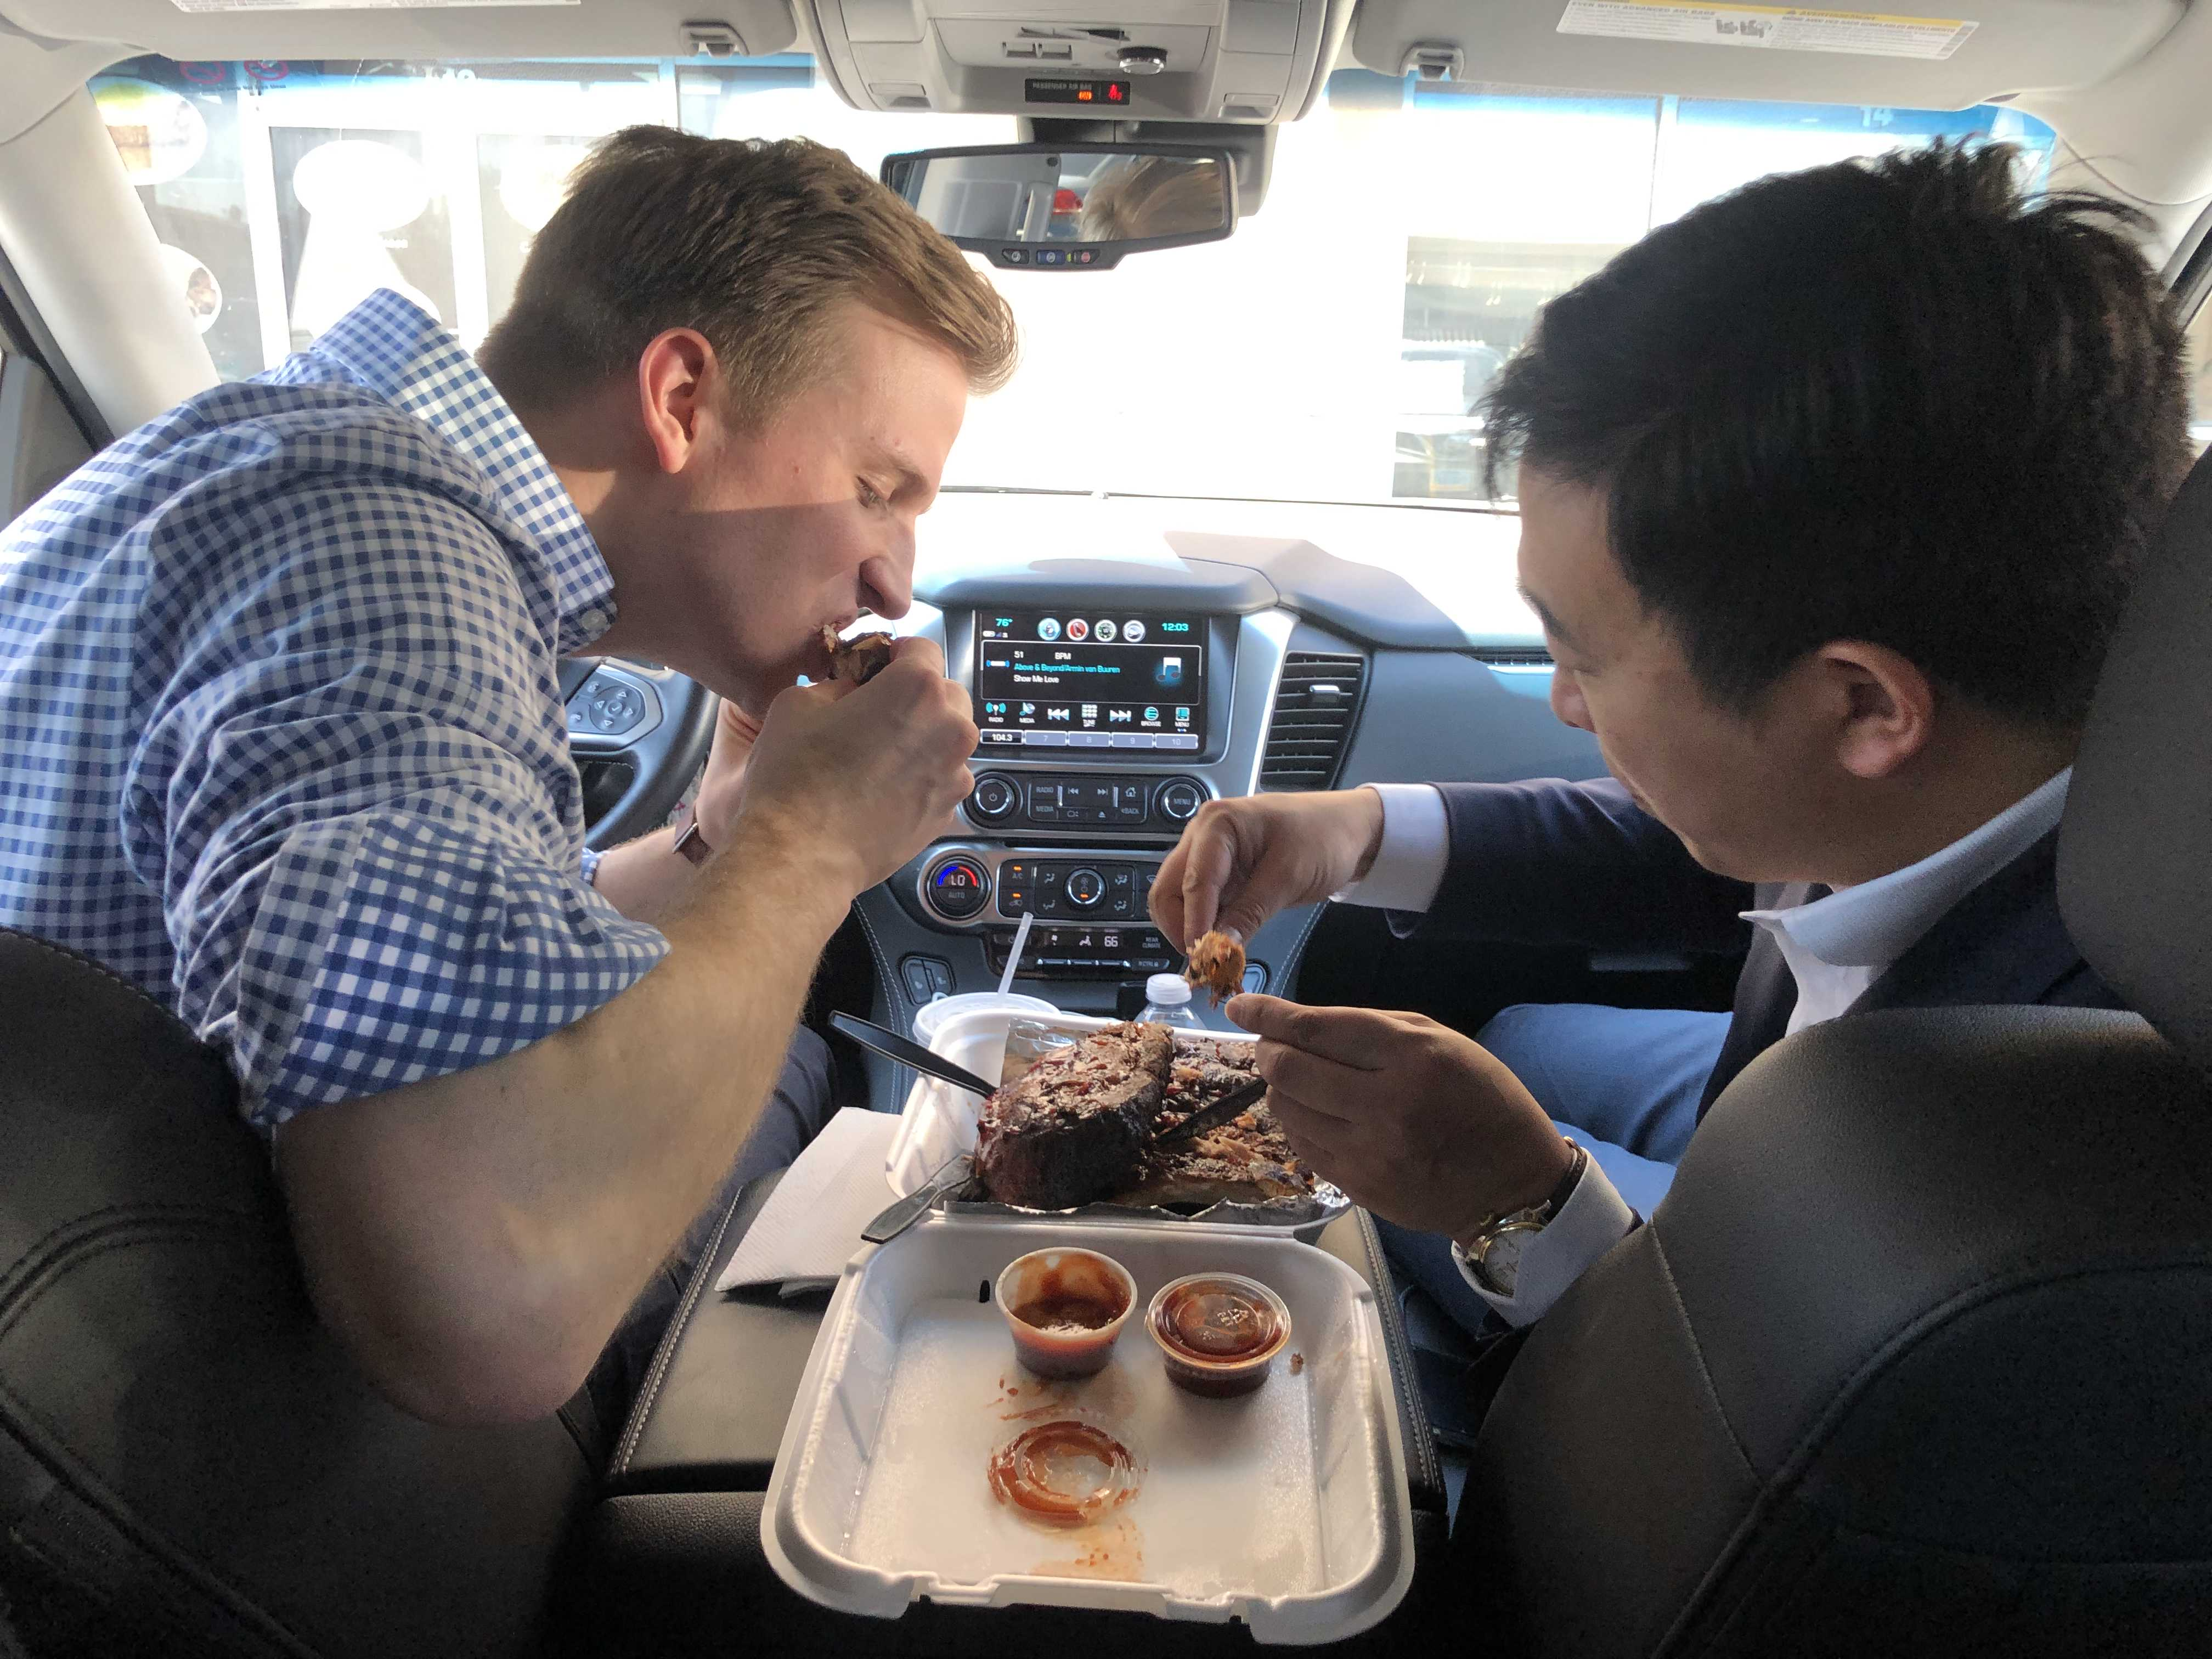 Zach sits in the driver's seat eating food with Andrew